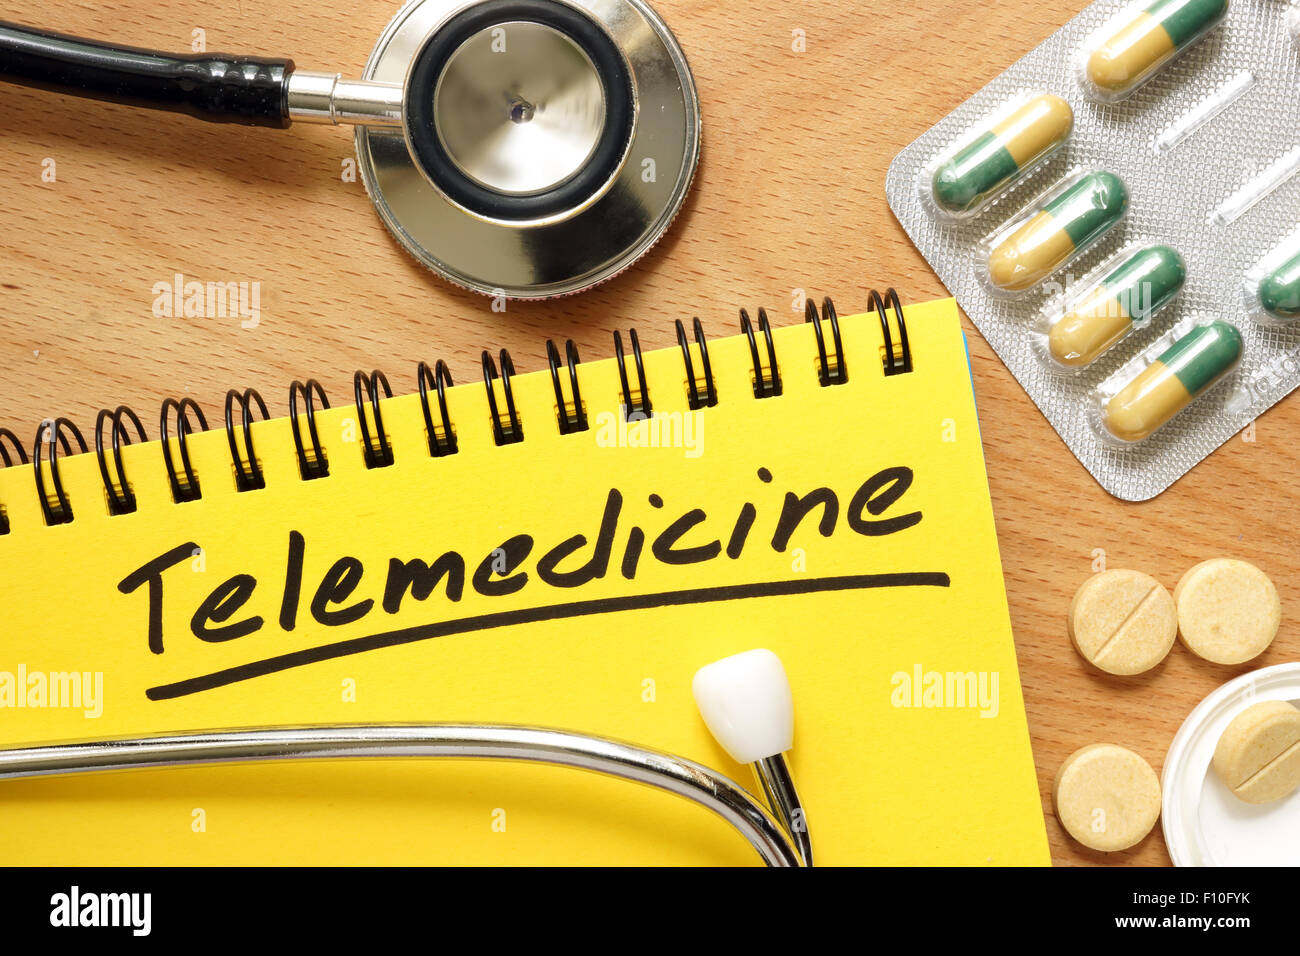 Notepad with telemedicine on a wooden table. - Stock Image